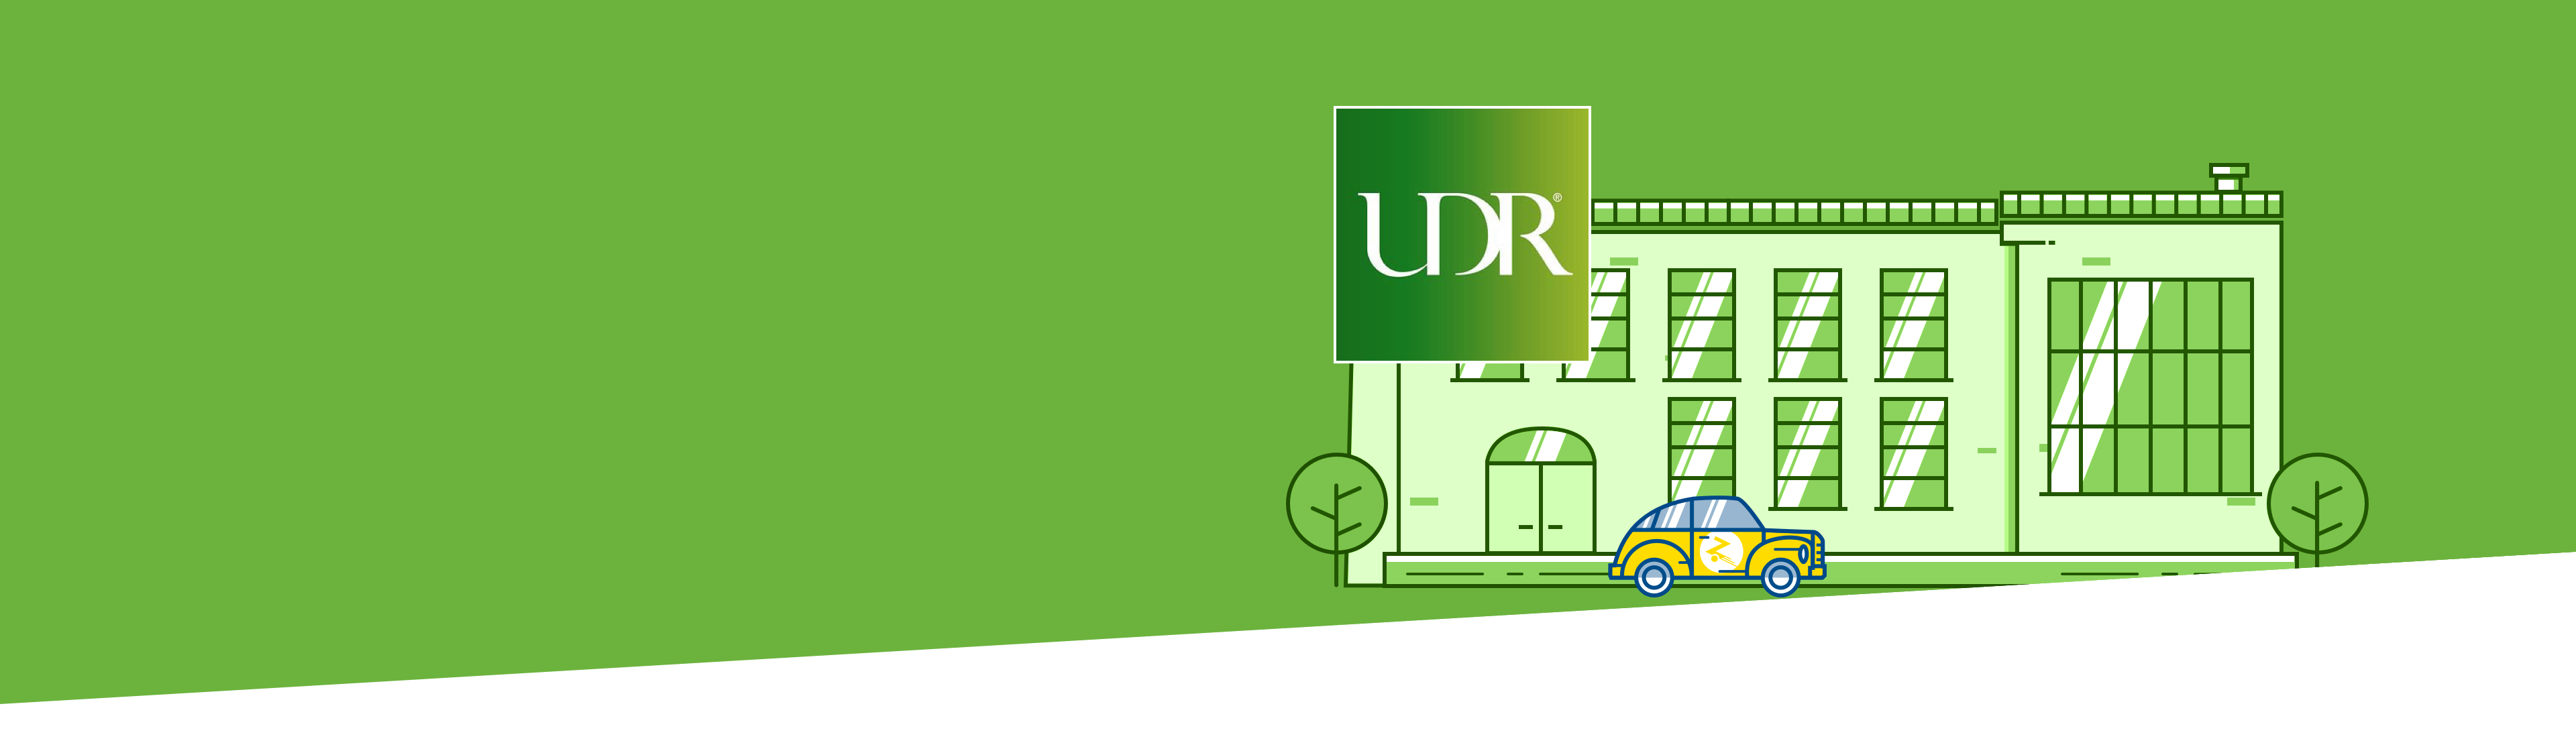 Building and UDR logo